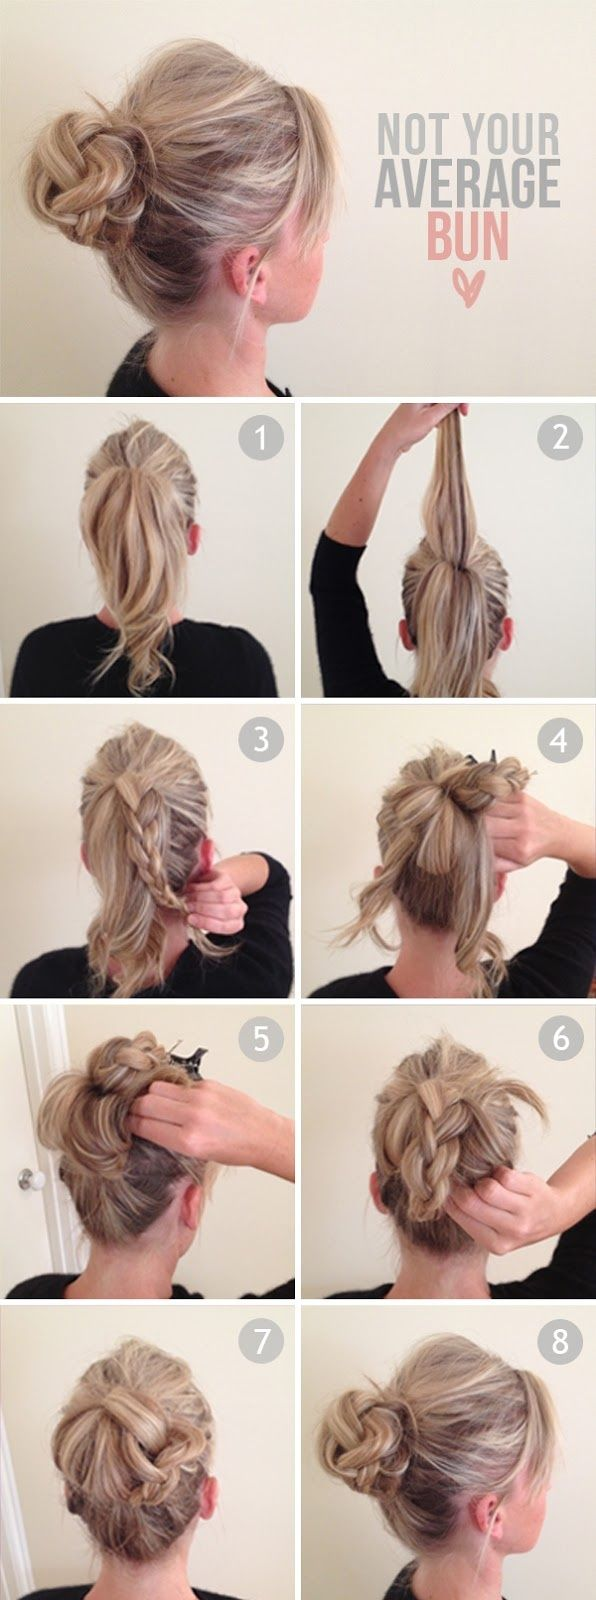 Not Your Average Bun- I think I'm going to try this and post a before and after pic. I bet mine looks nothing like this.